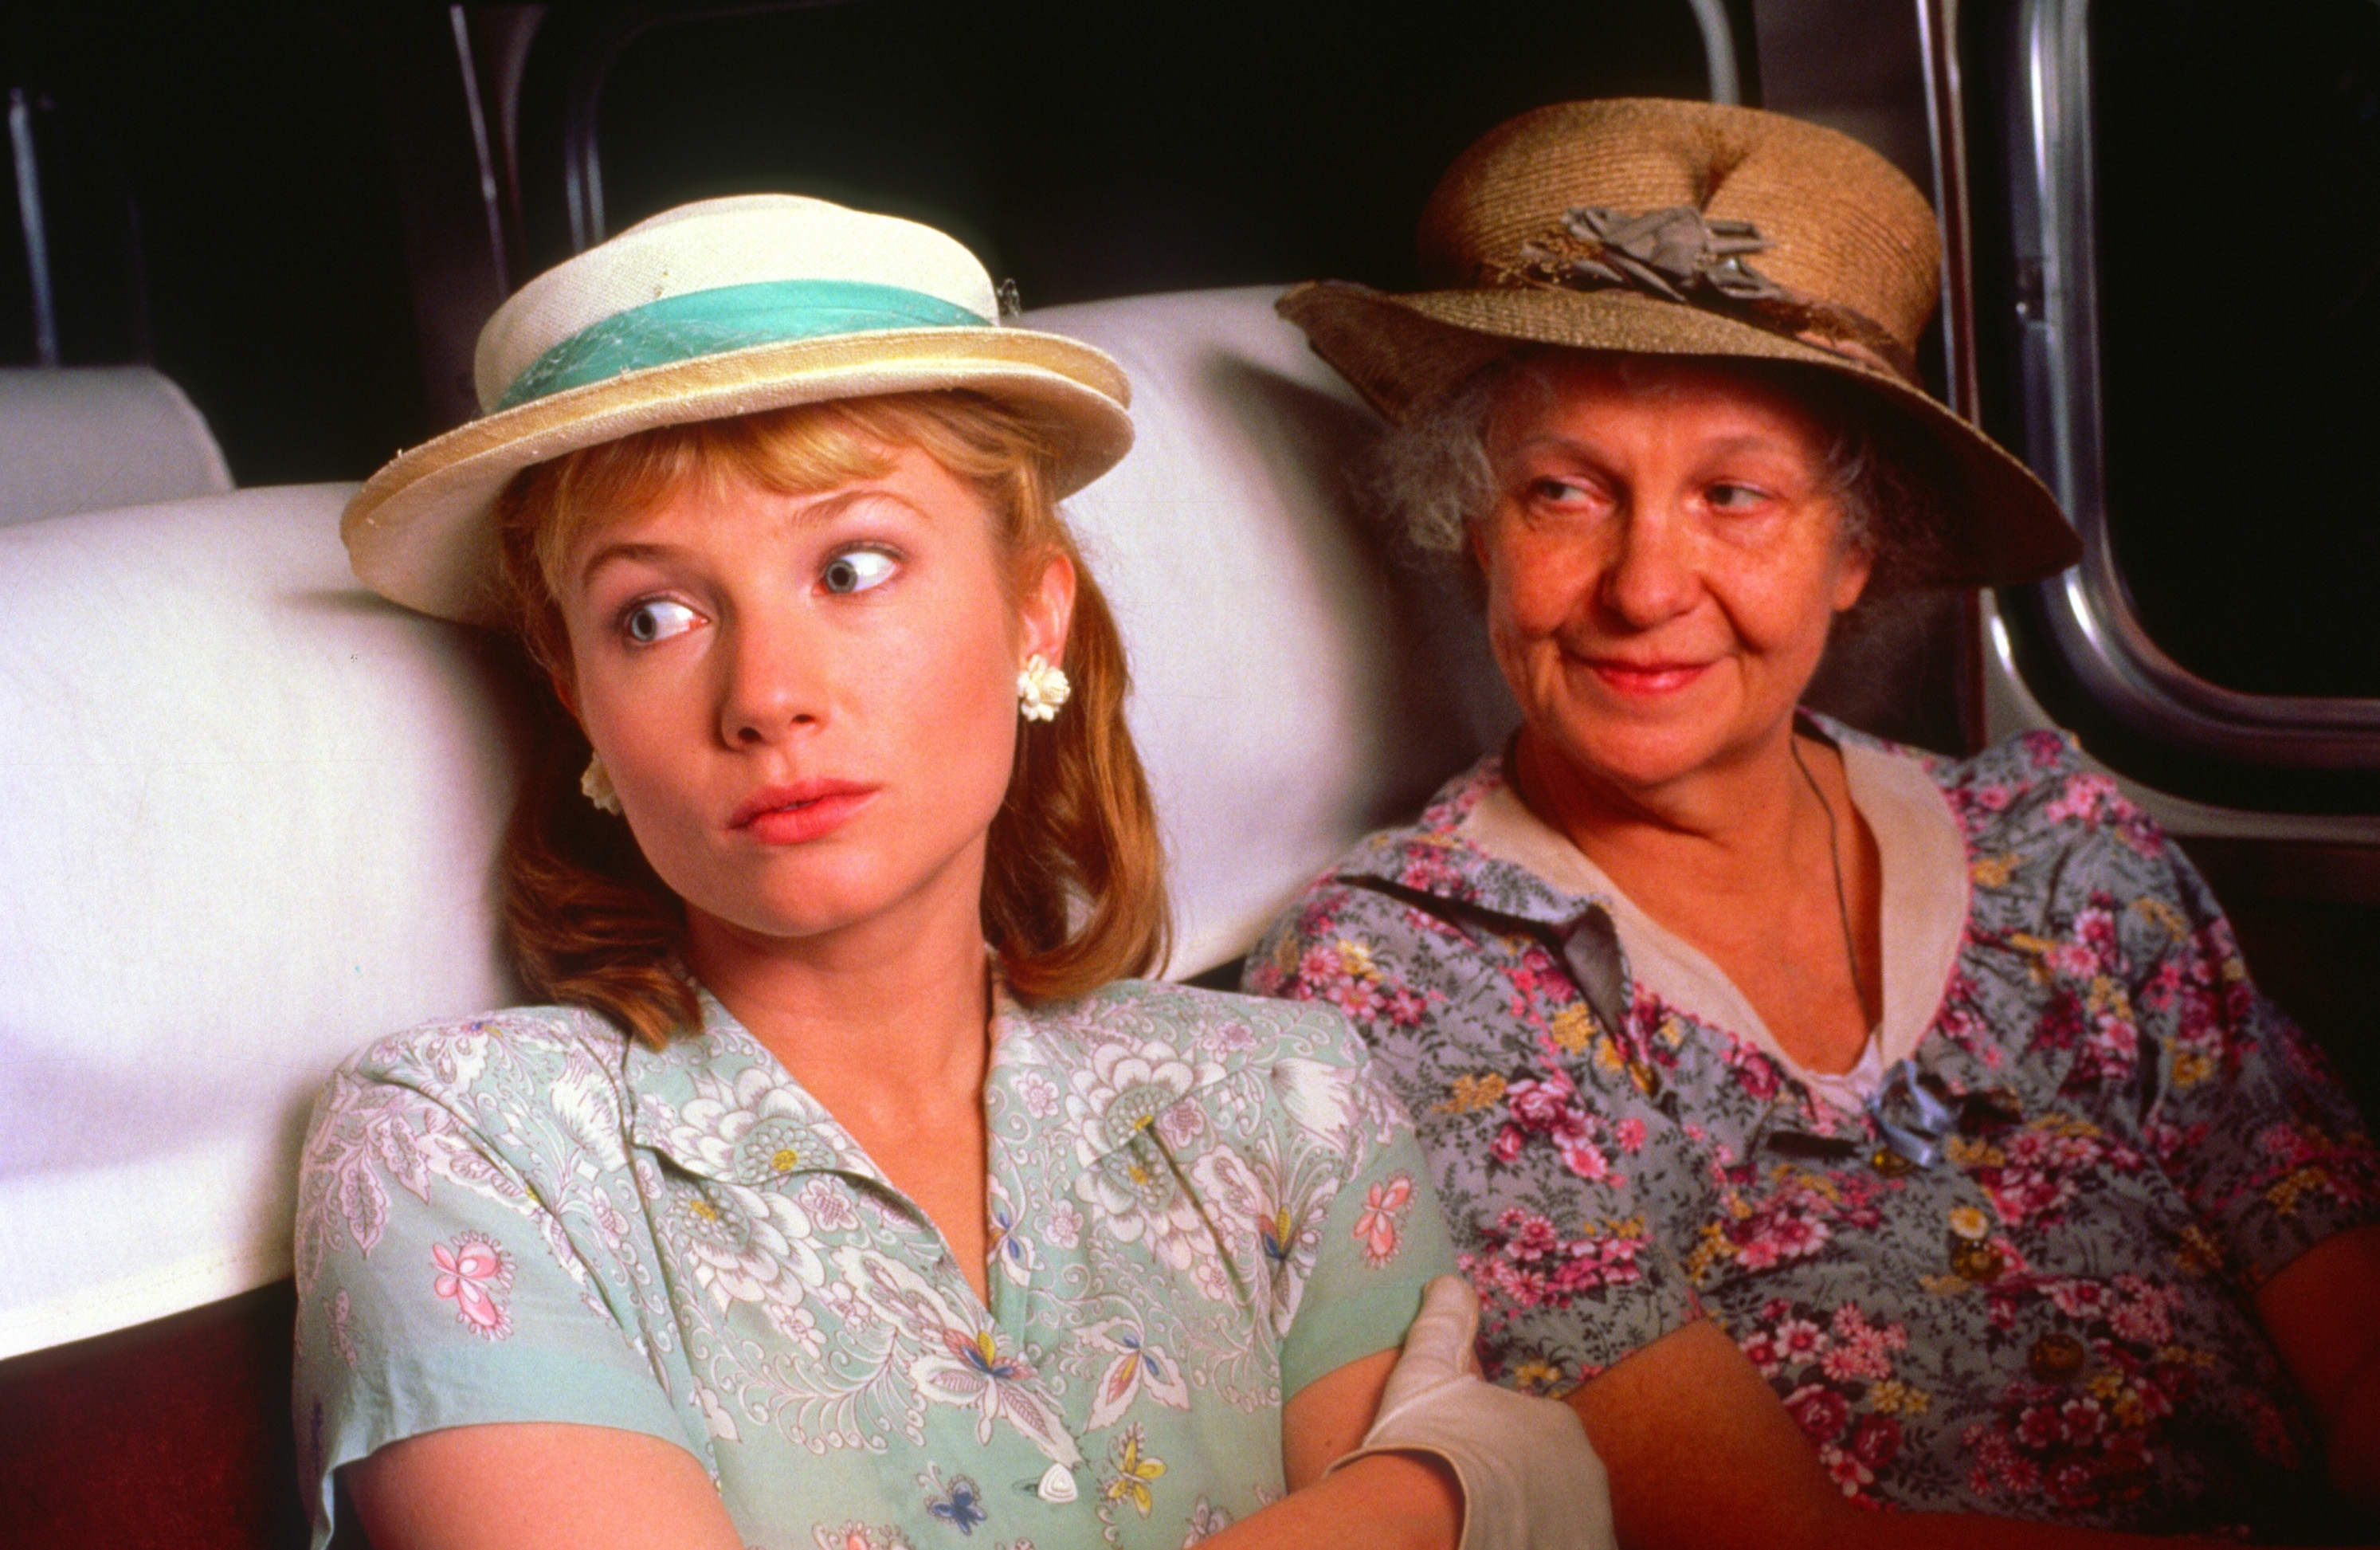 The Trip to Bountiful (1985) Directed by Peter Masterson Shown from left: Rebecca De Mornay, Geraldine Page